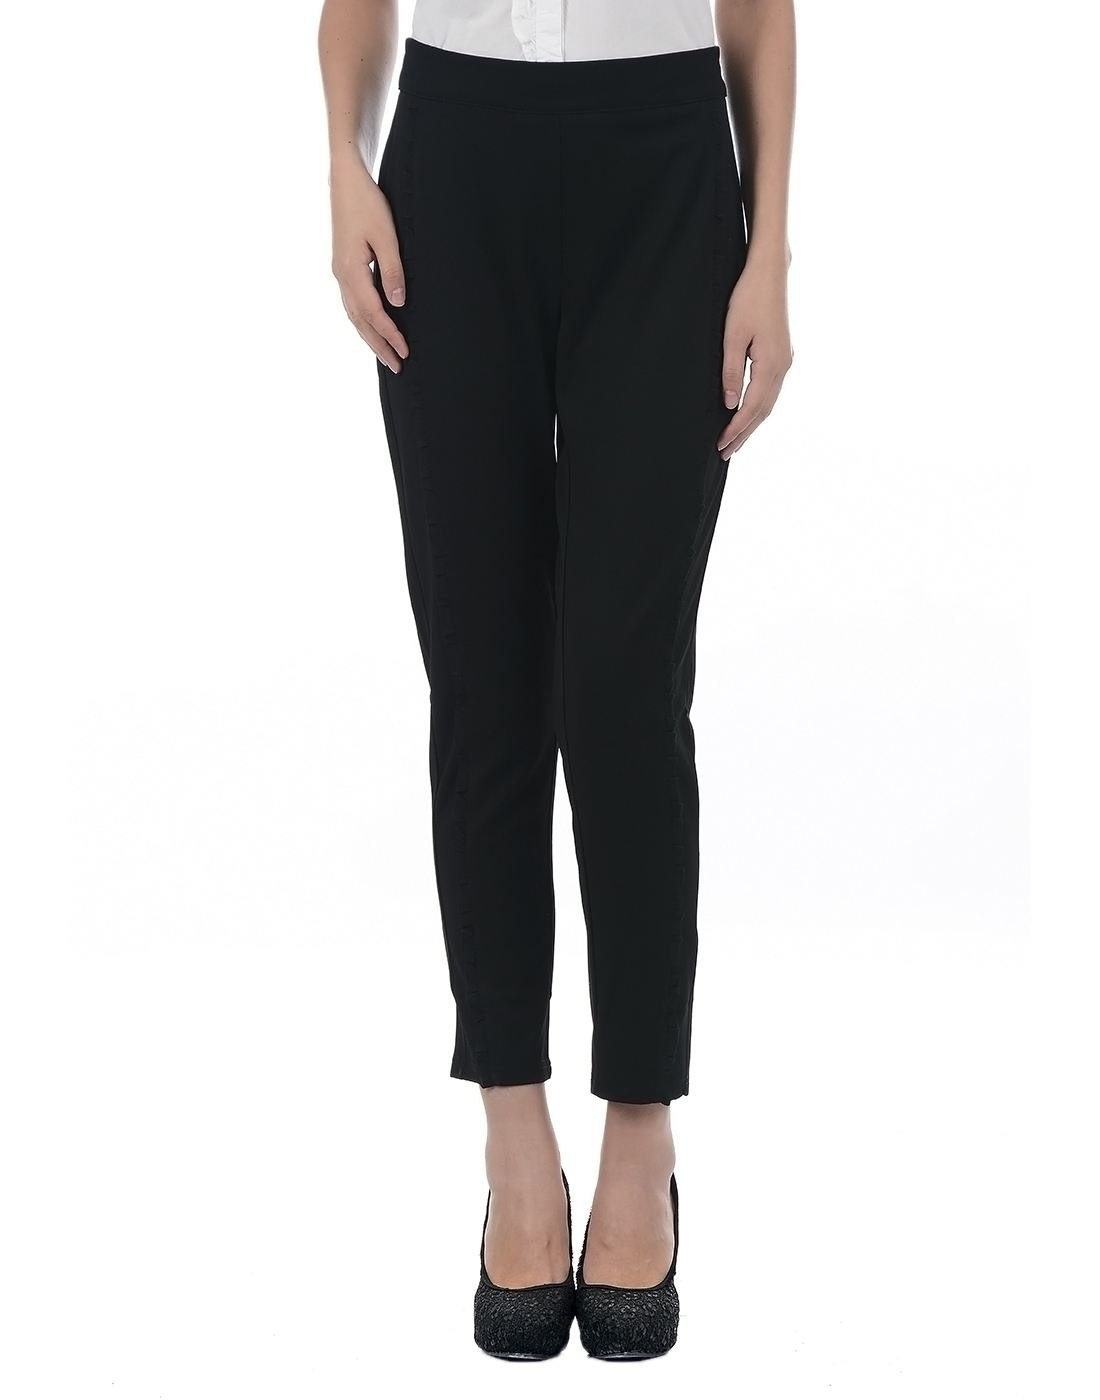 Only Women Casual Black Trouser